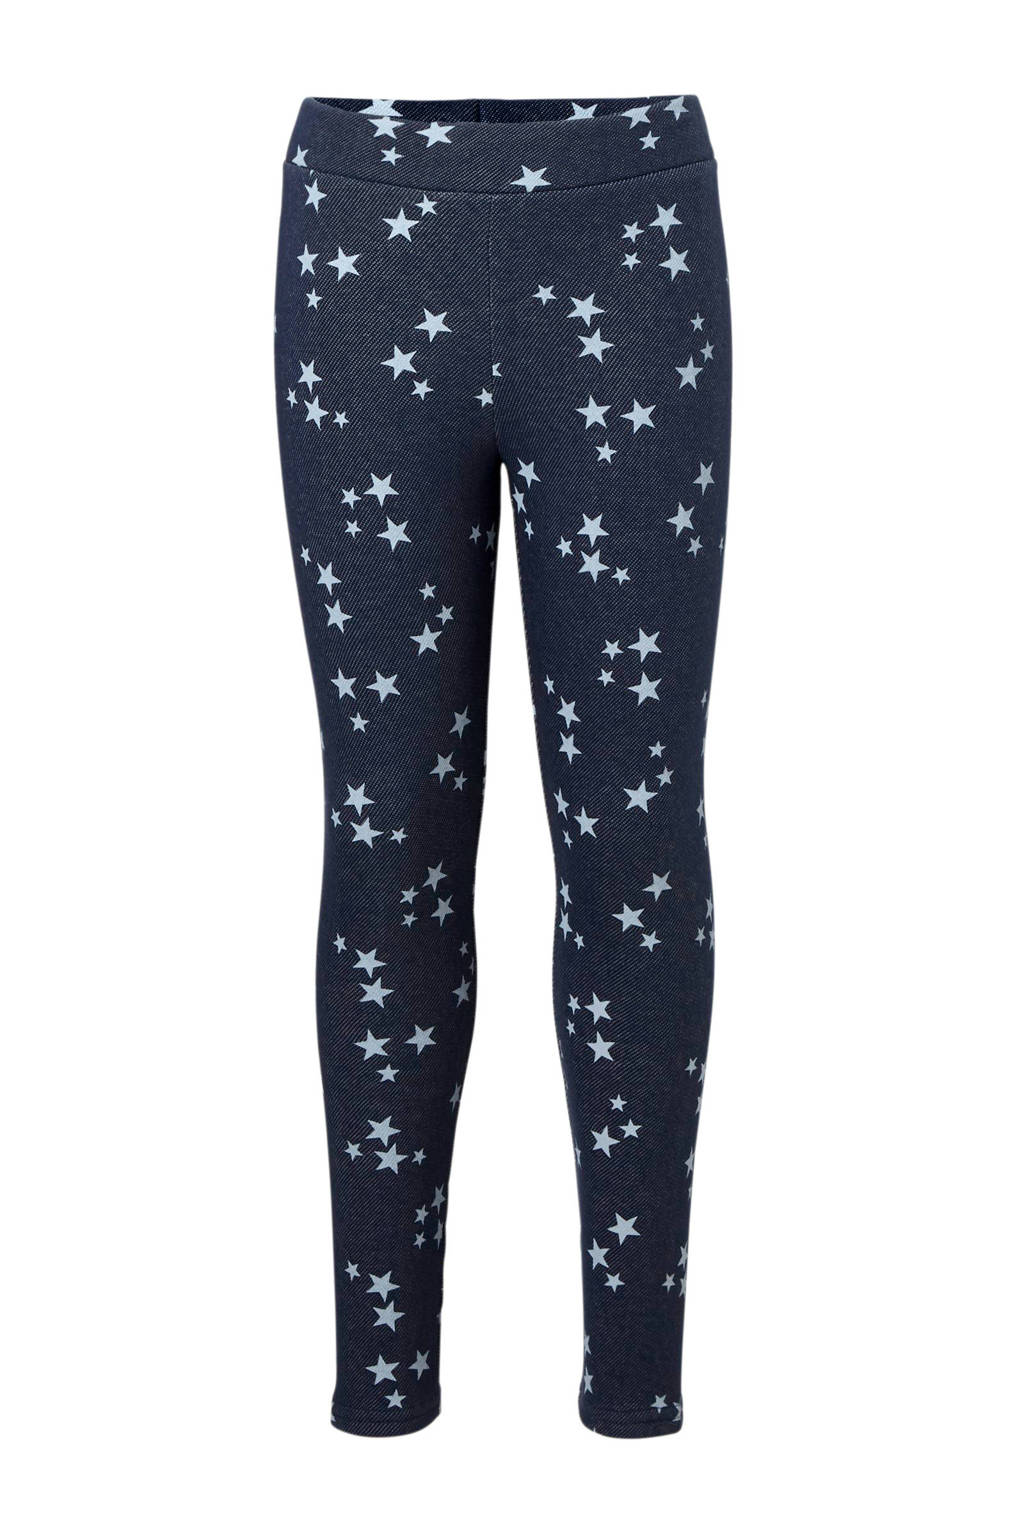 C&A Here & There thermo legging met sterren blauw, Donkerblauw